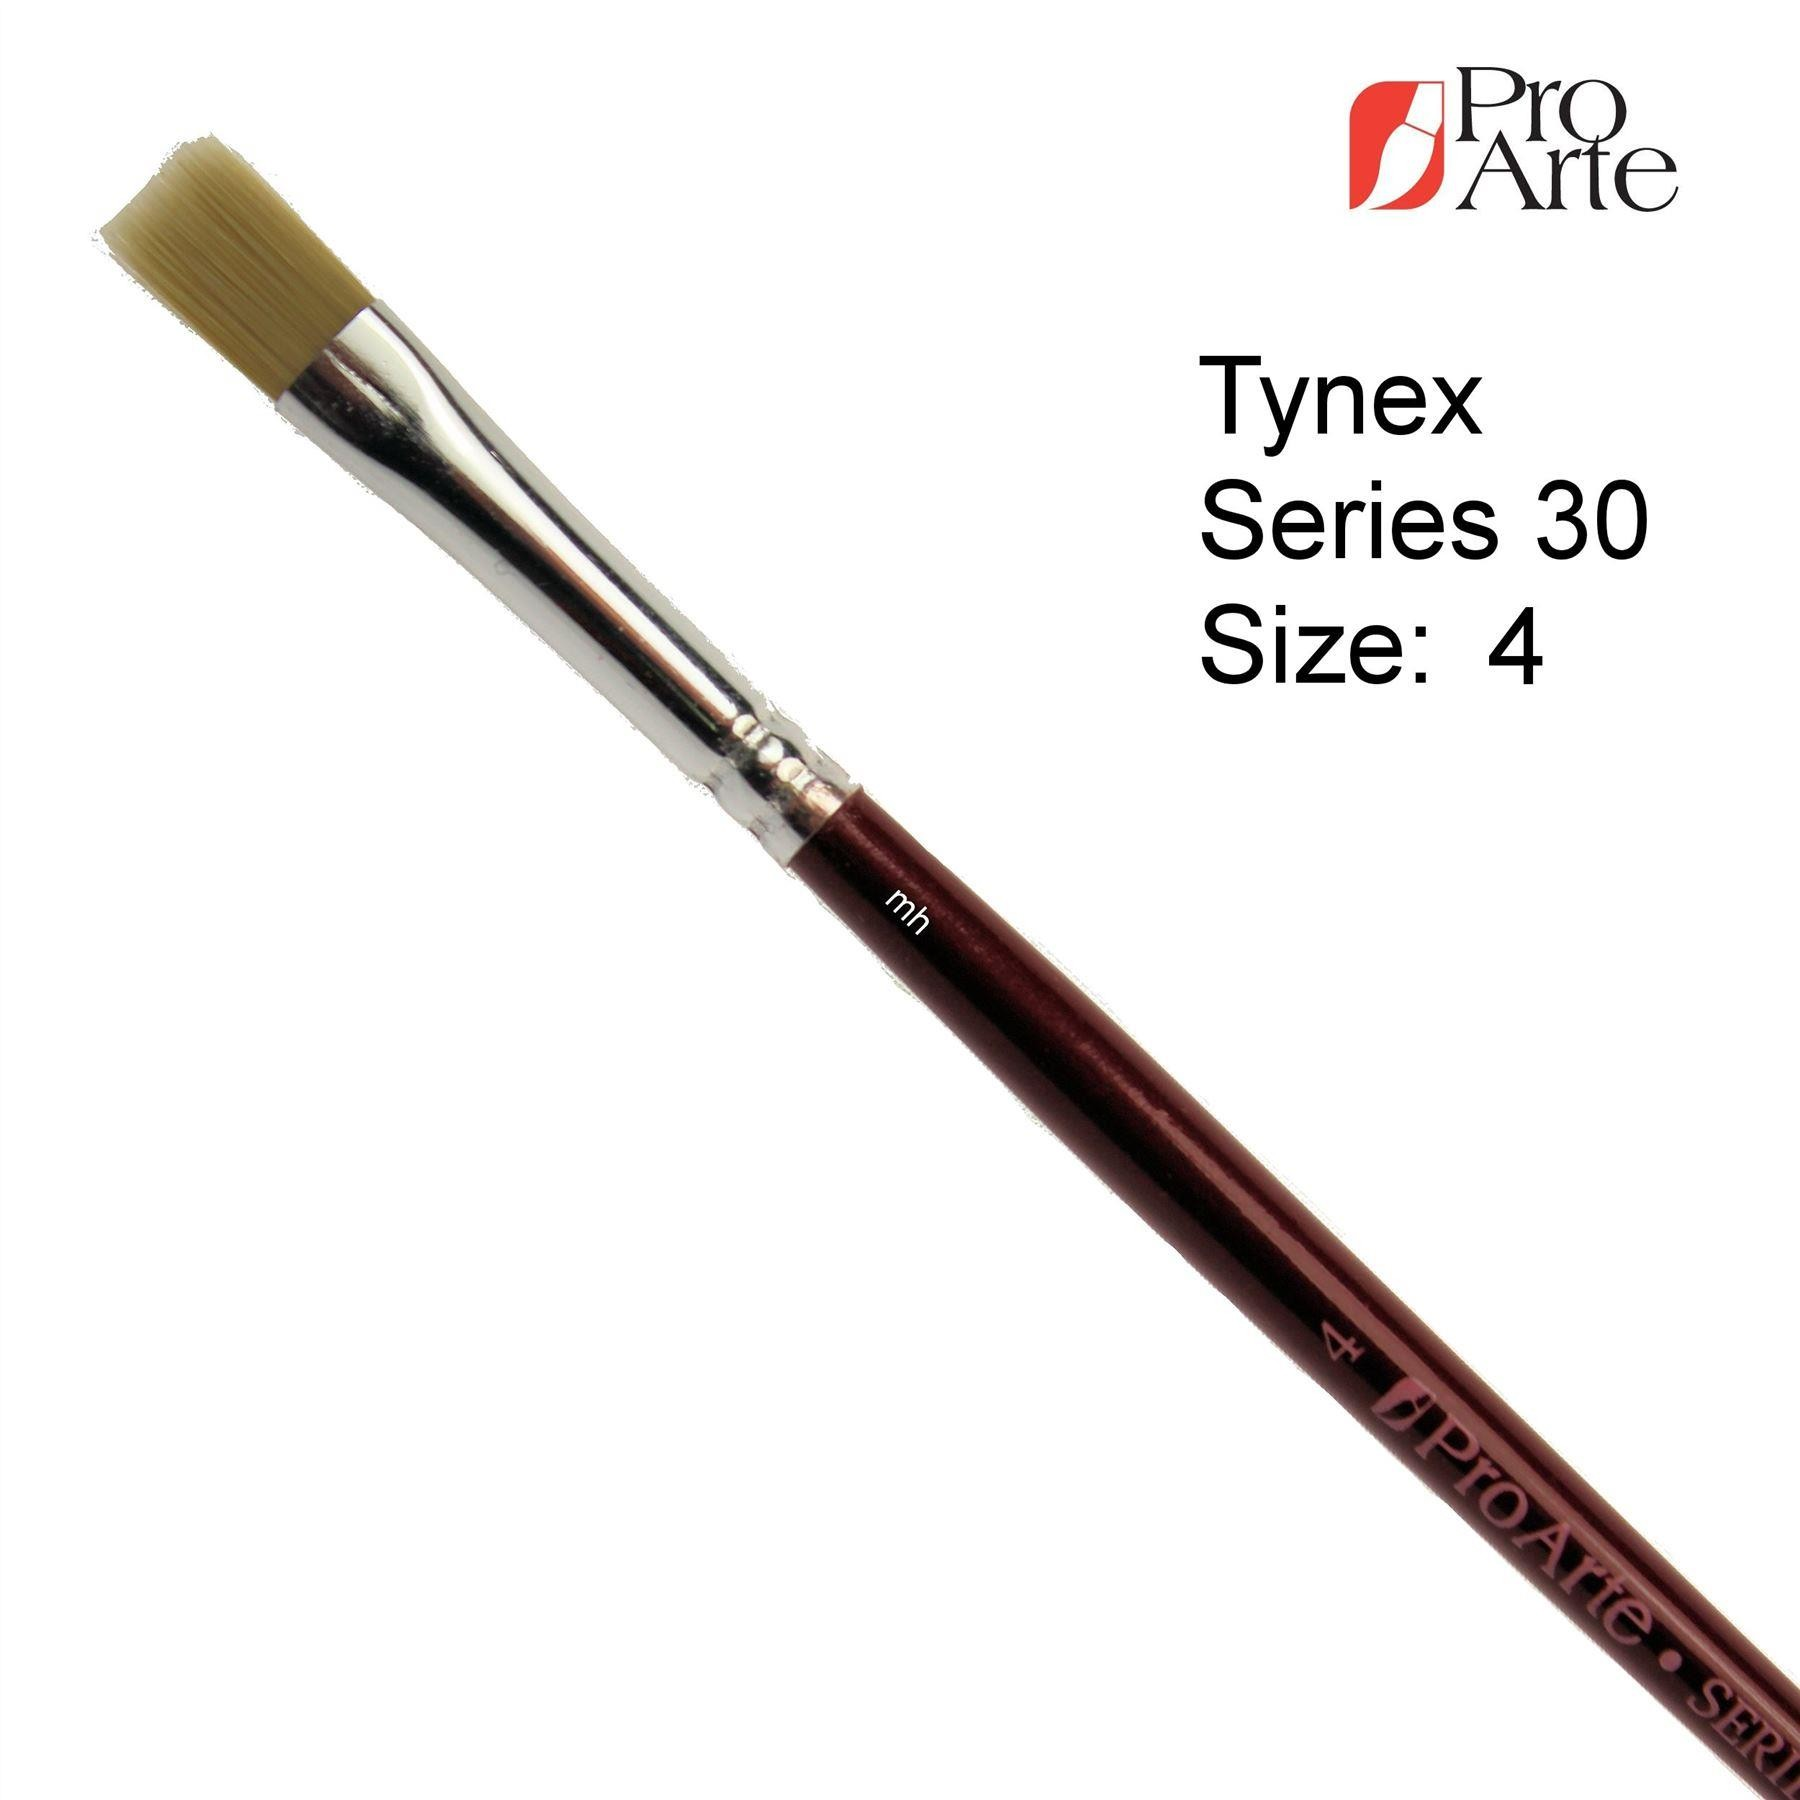 Pro Arte Series 30 Flat brush